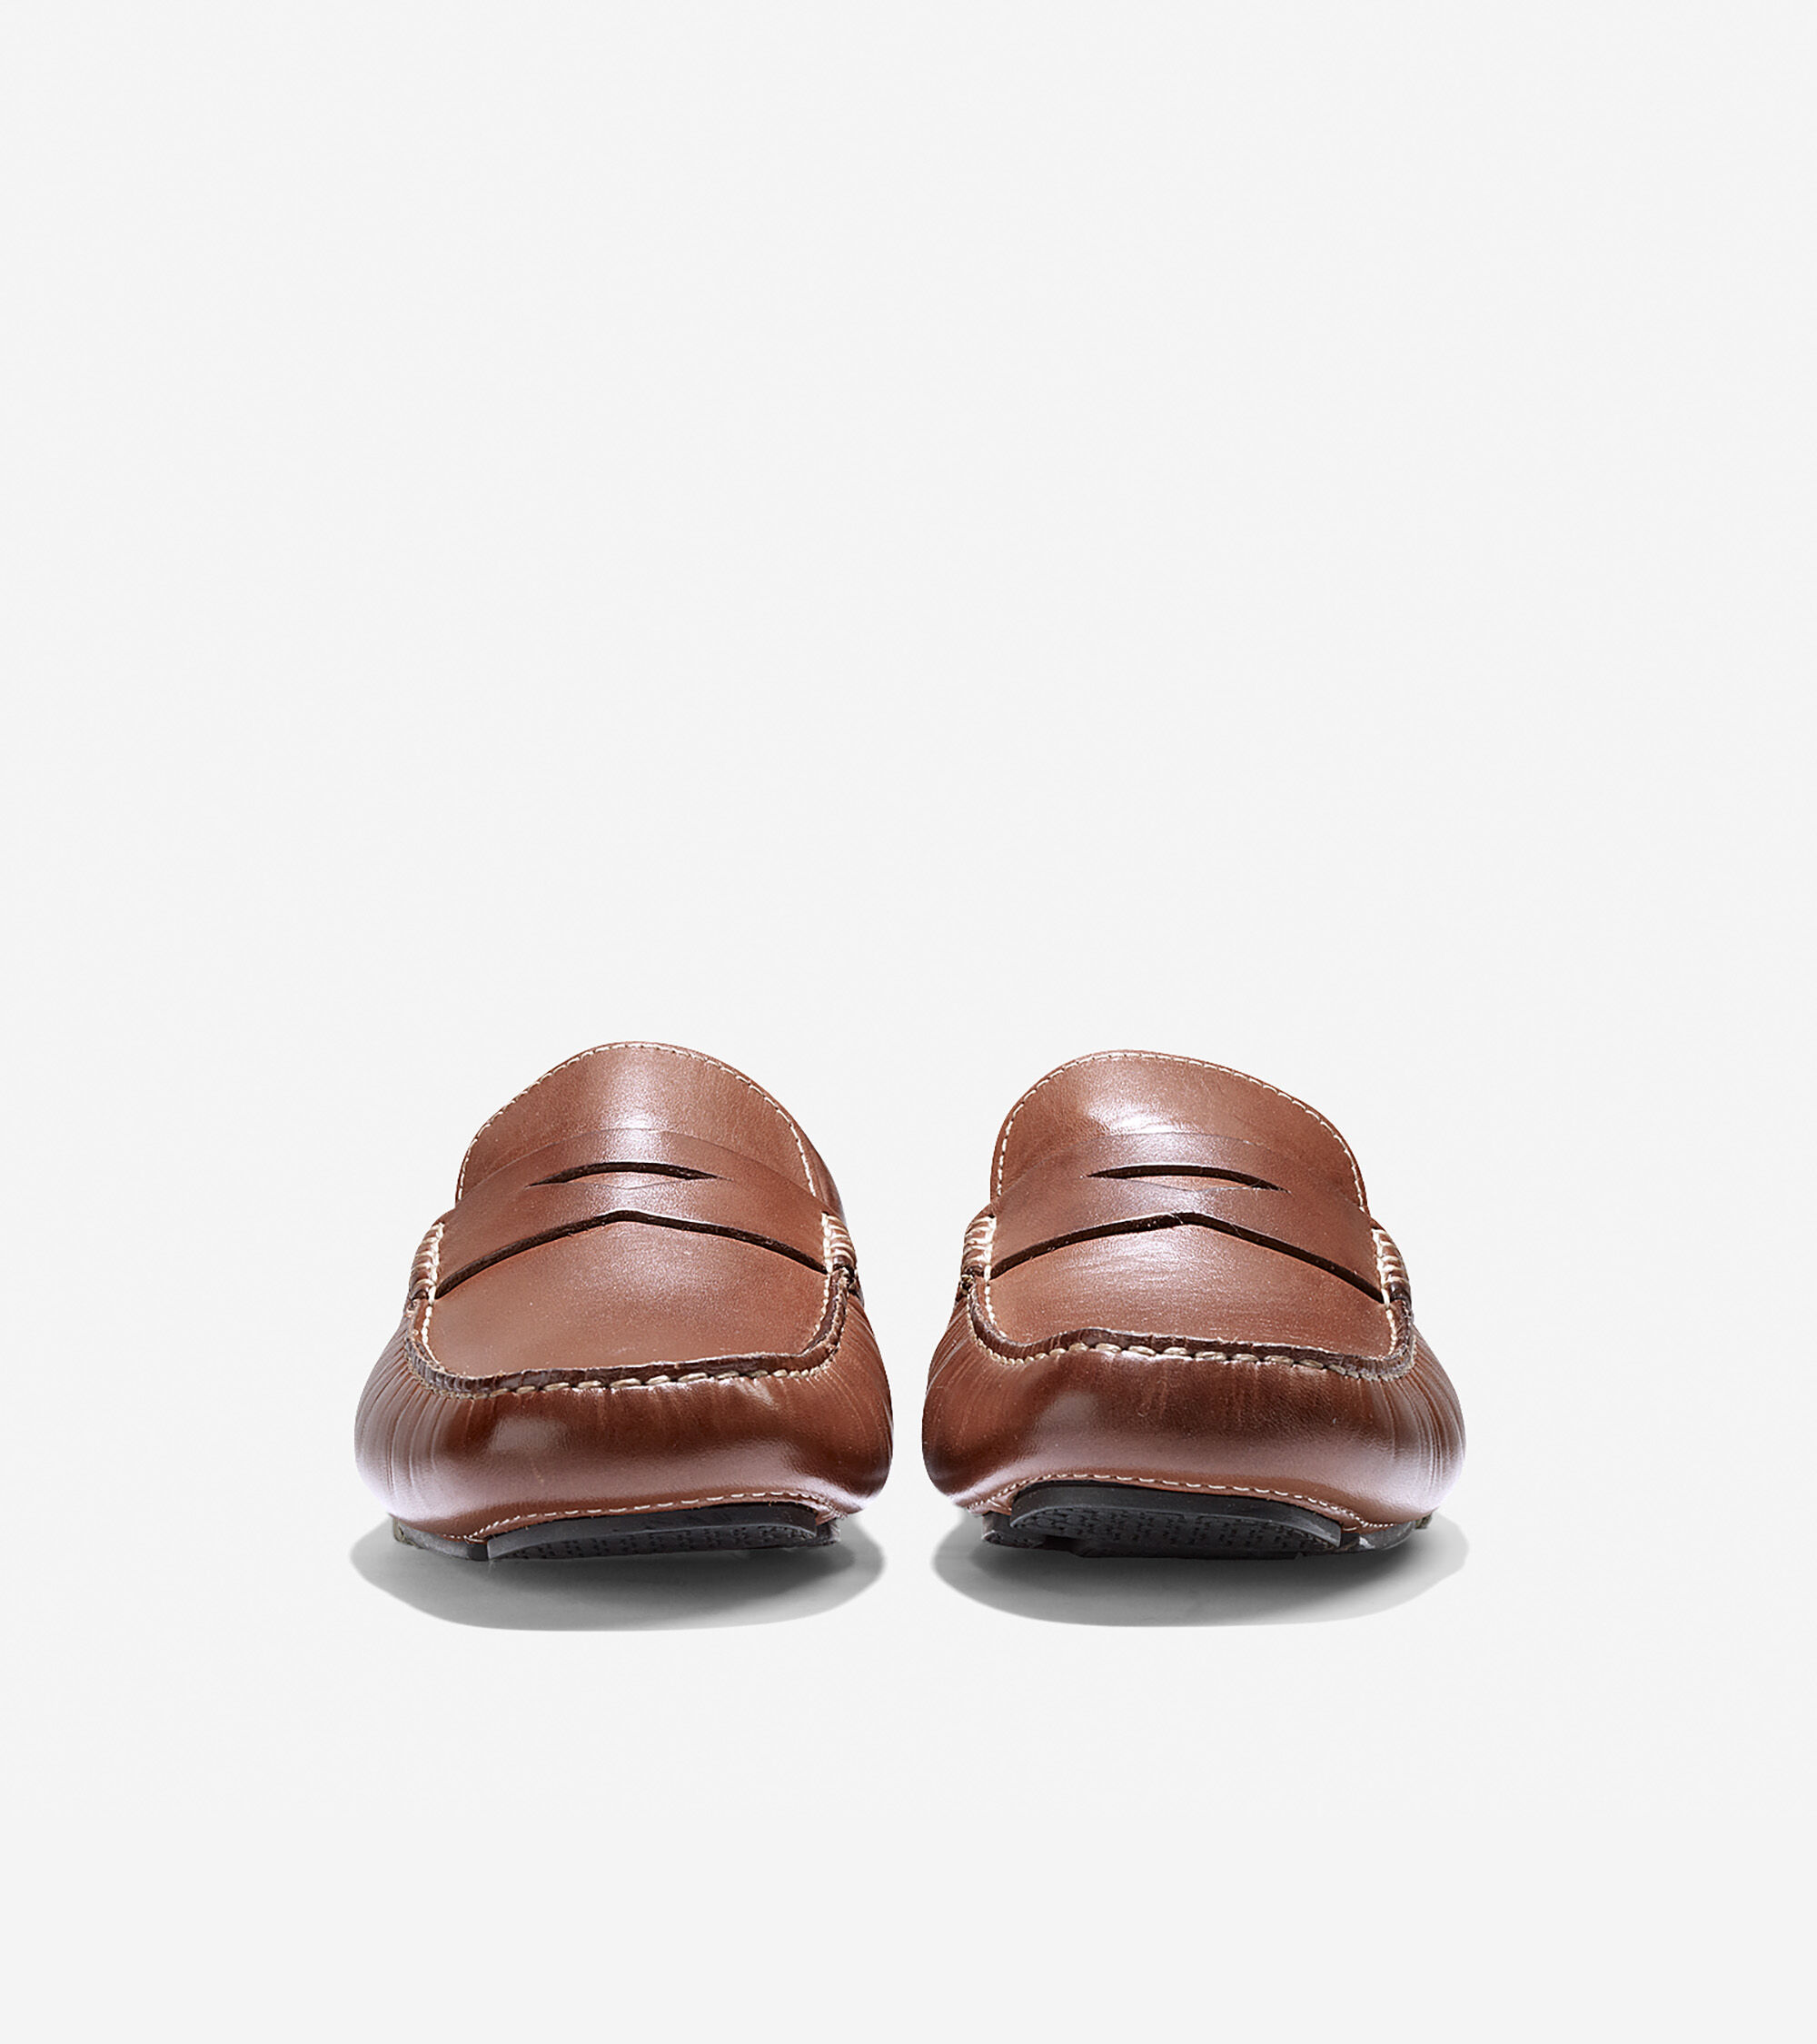 5bb3a8eb249 Howland Penny Loafer · Howland Penny Loafer ...